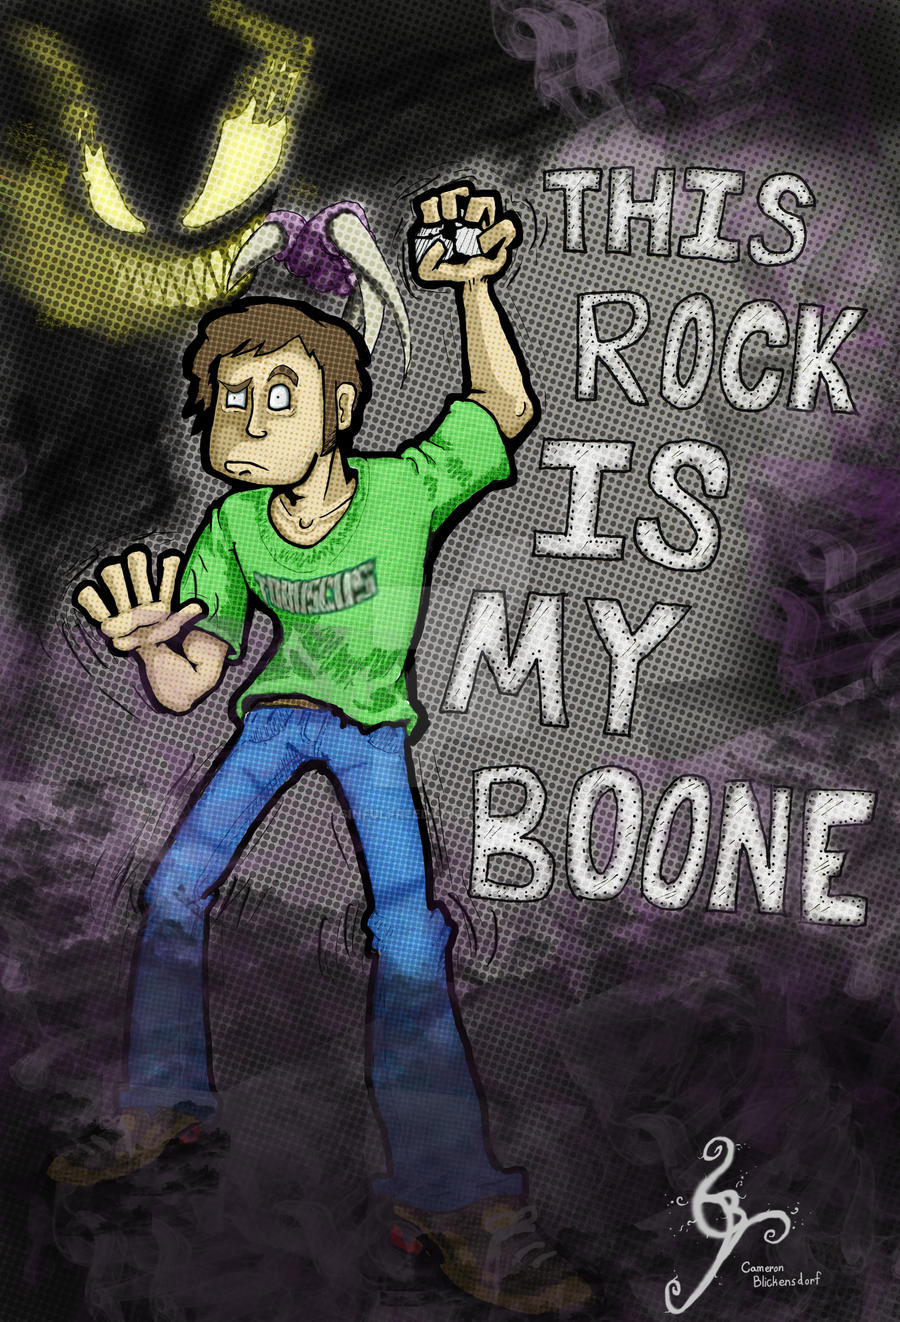 Boone Rock re-dux by SinfulFreedom